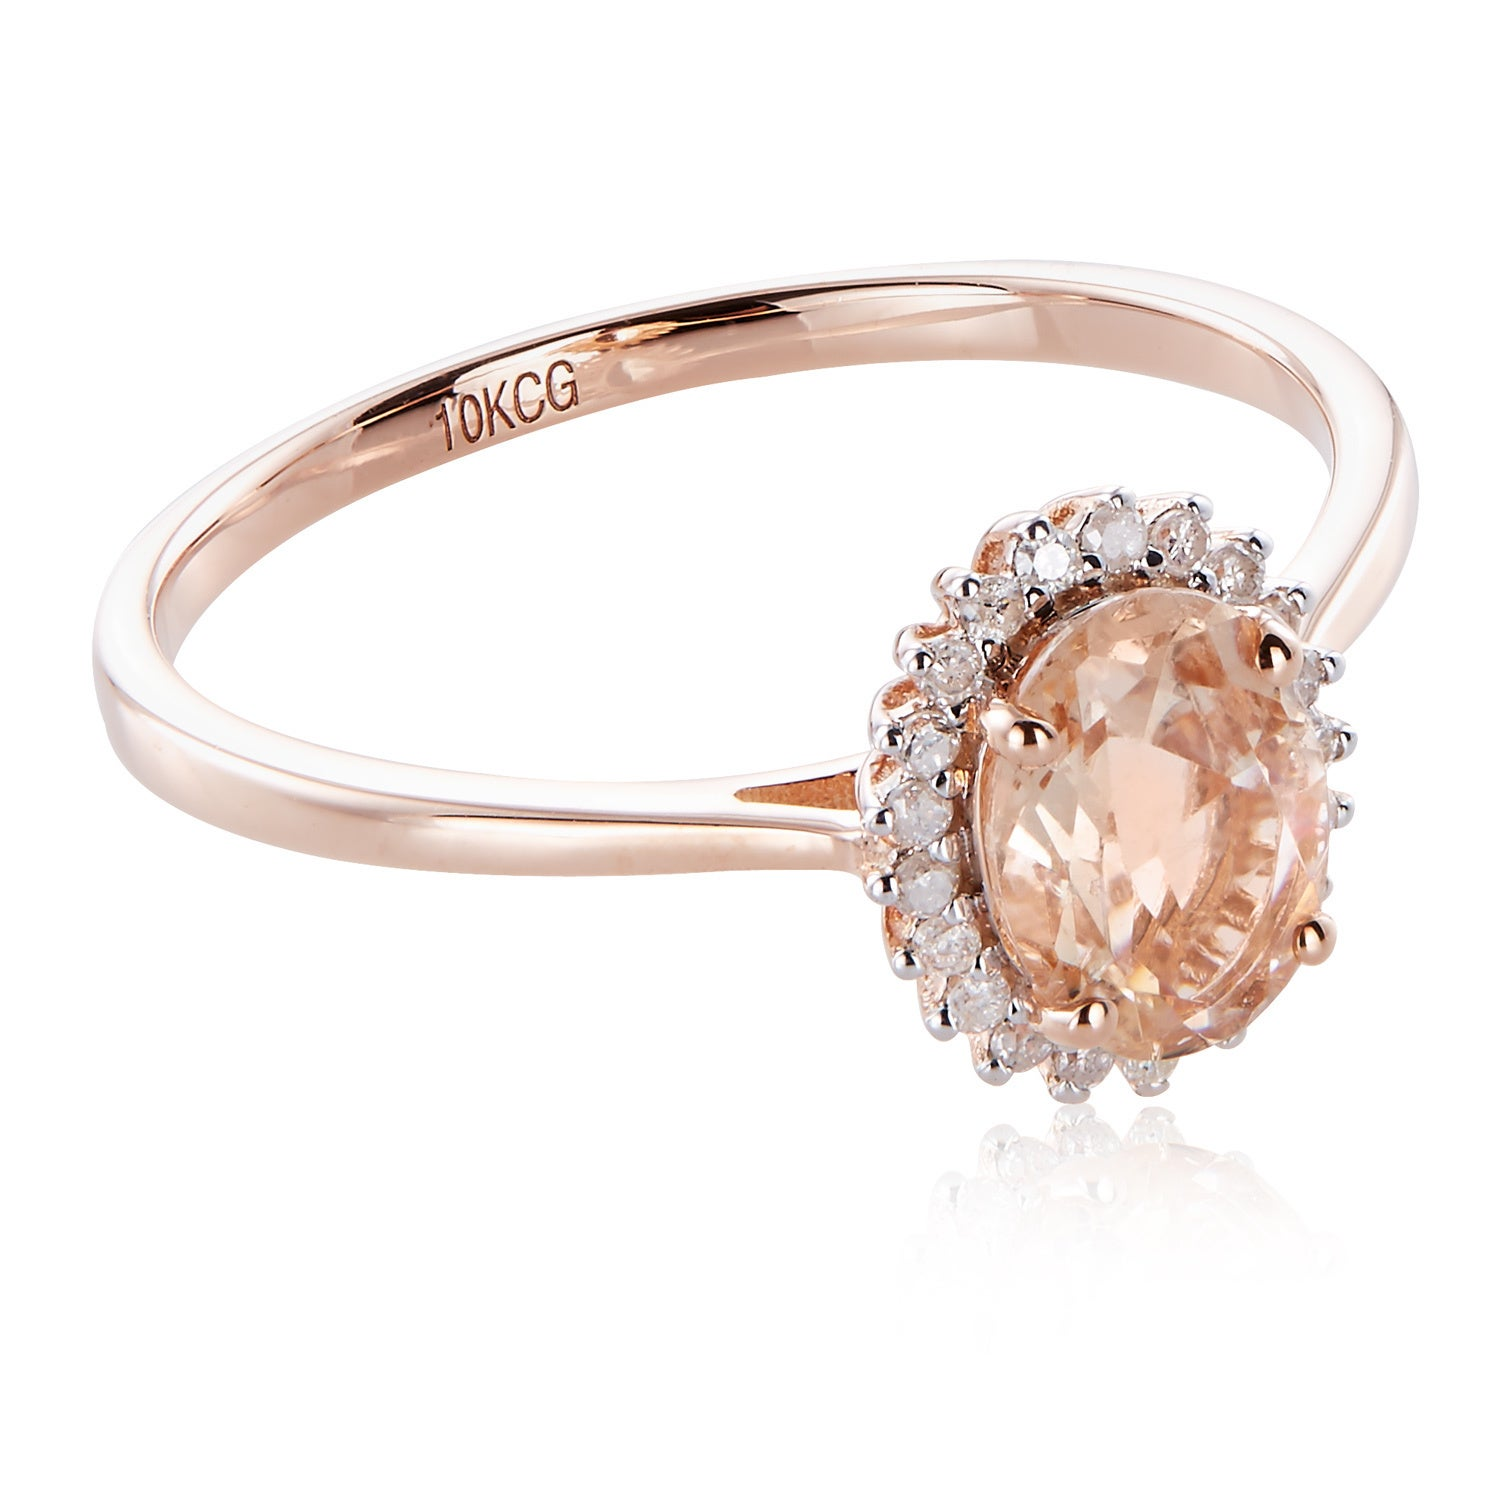 1//6 cttw, Size-5.5 Diamond Wedding Band in 10K Pink Gold G-H,I2-I3